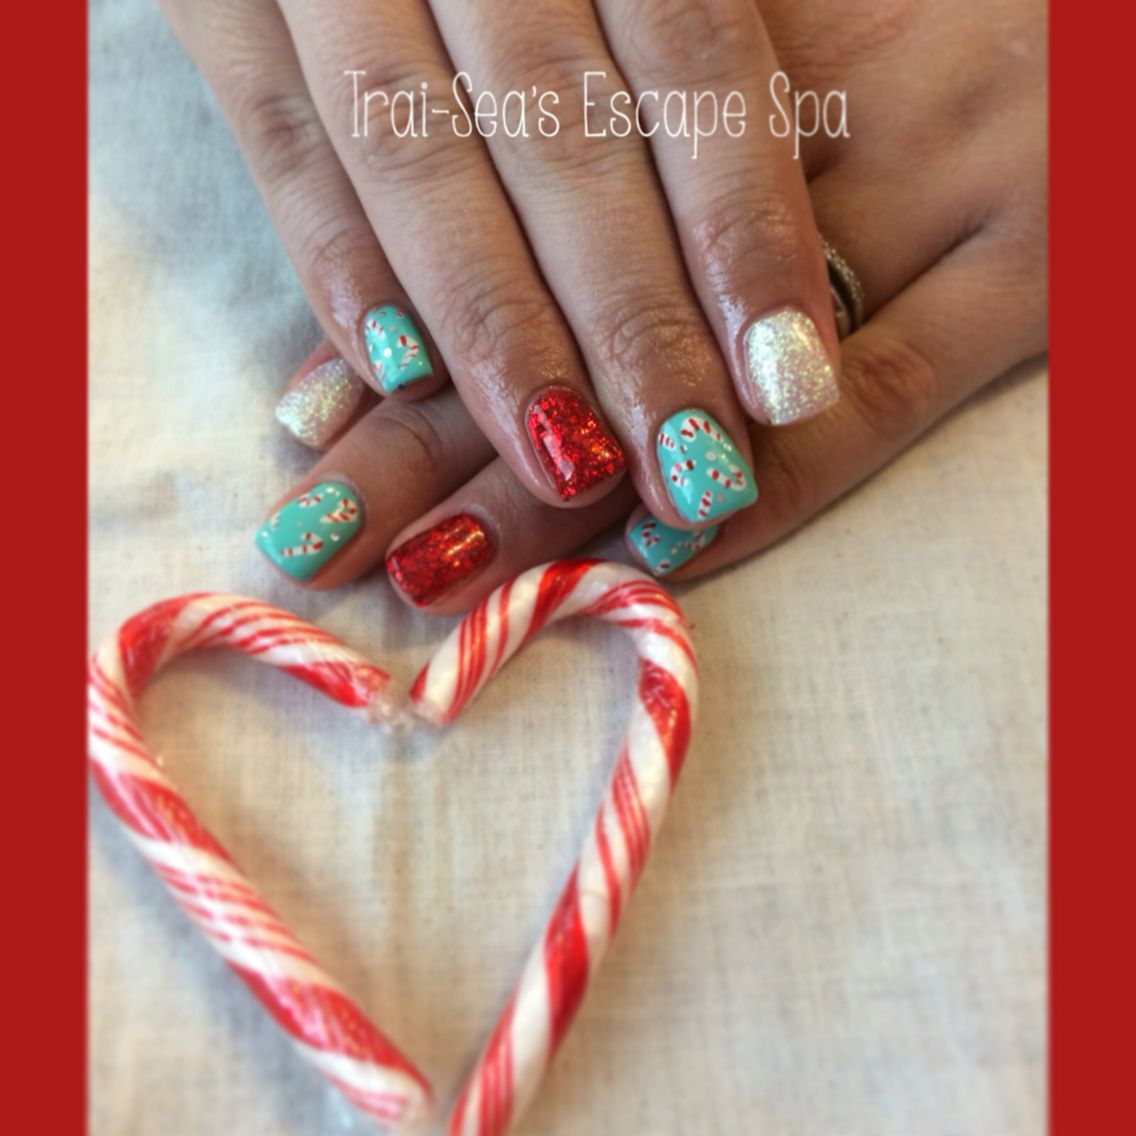 Hand Painted Christmas Nail Art: Candy Cane Nails Hand Painted By Trai-Sea's Escape Spa